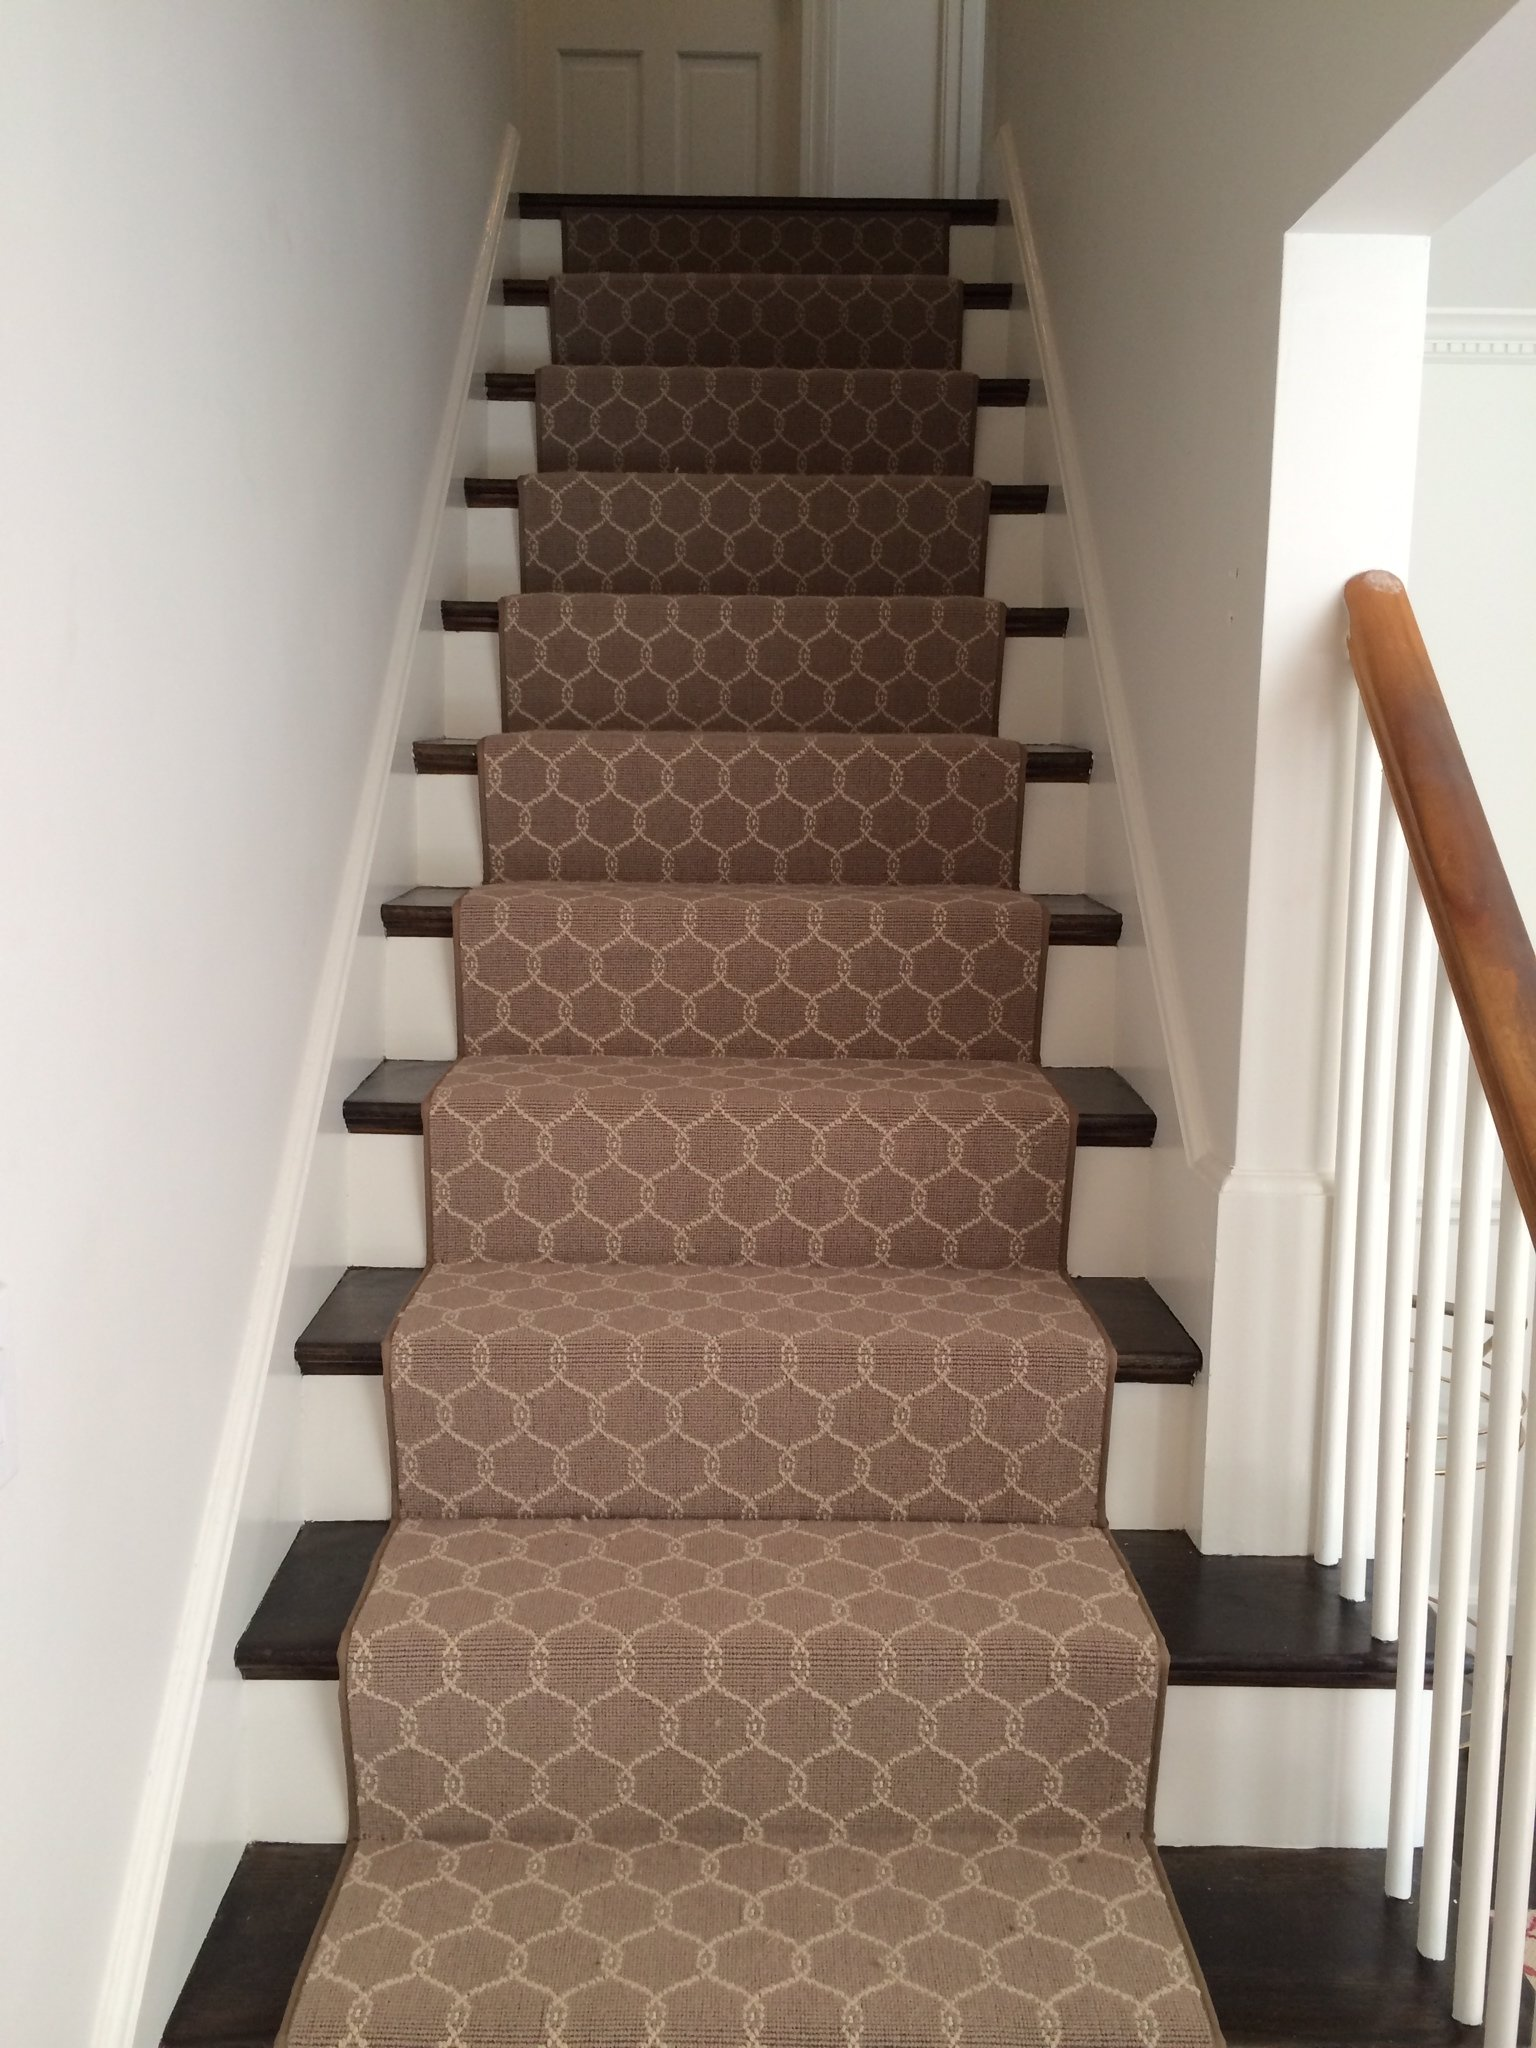 10 Gorgeous Ideas For Stairs Instead Of Carpet stair carpet buyers guide the carpet workroom 2021